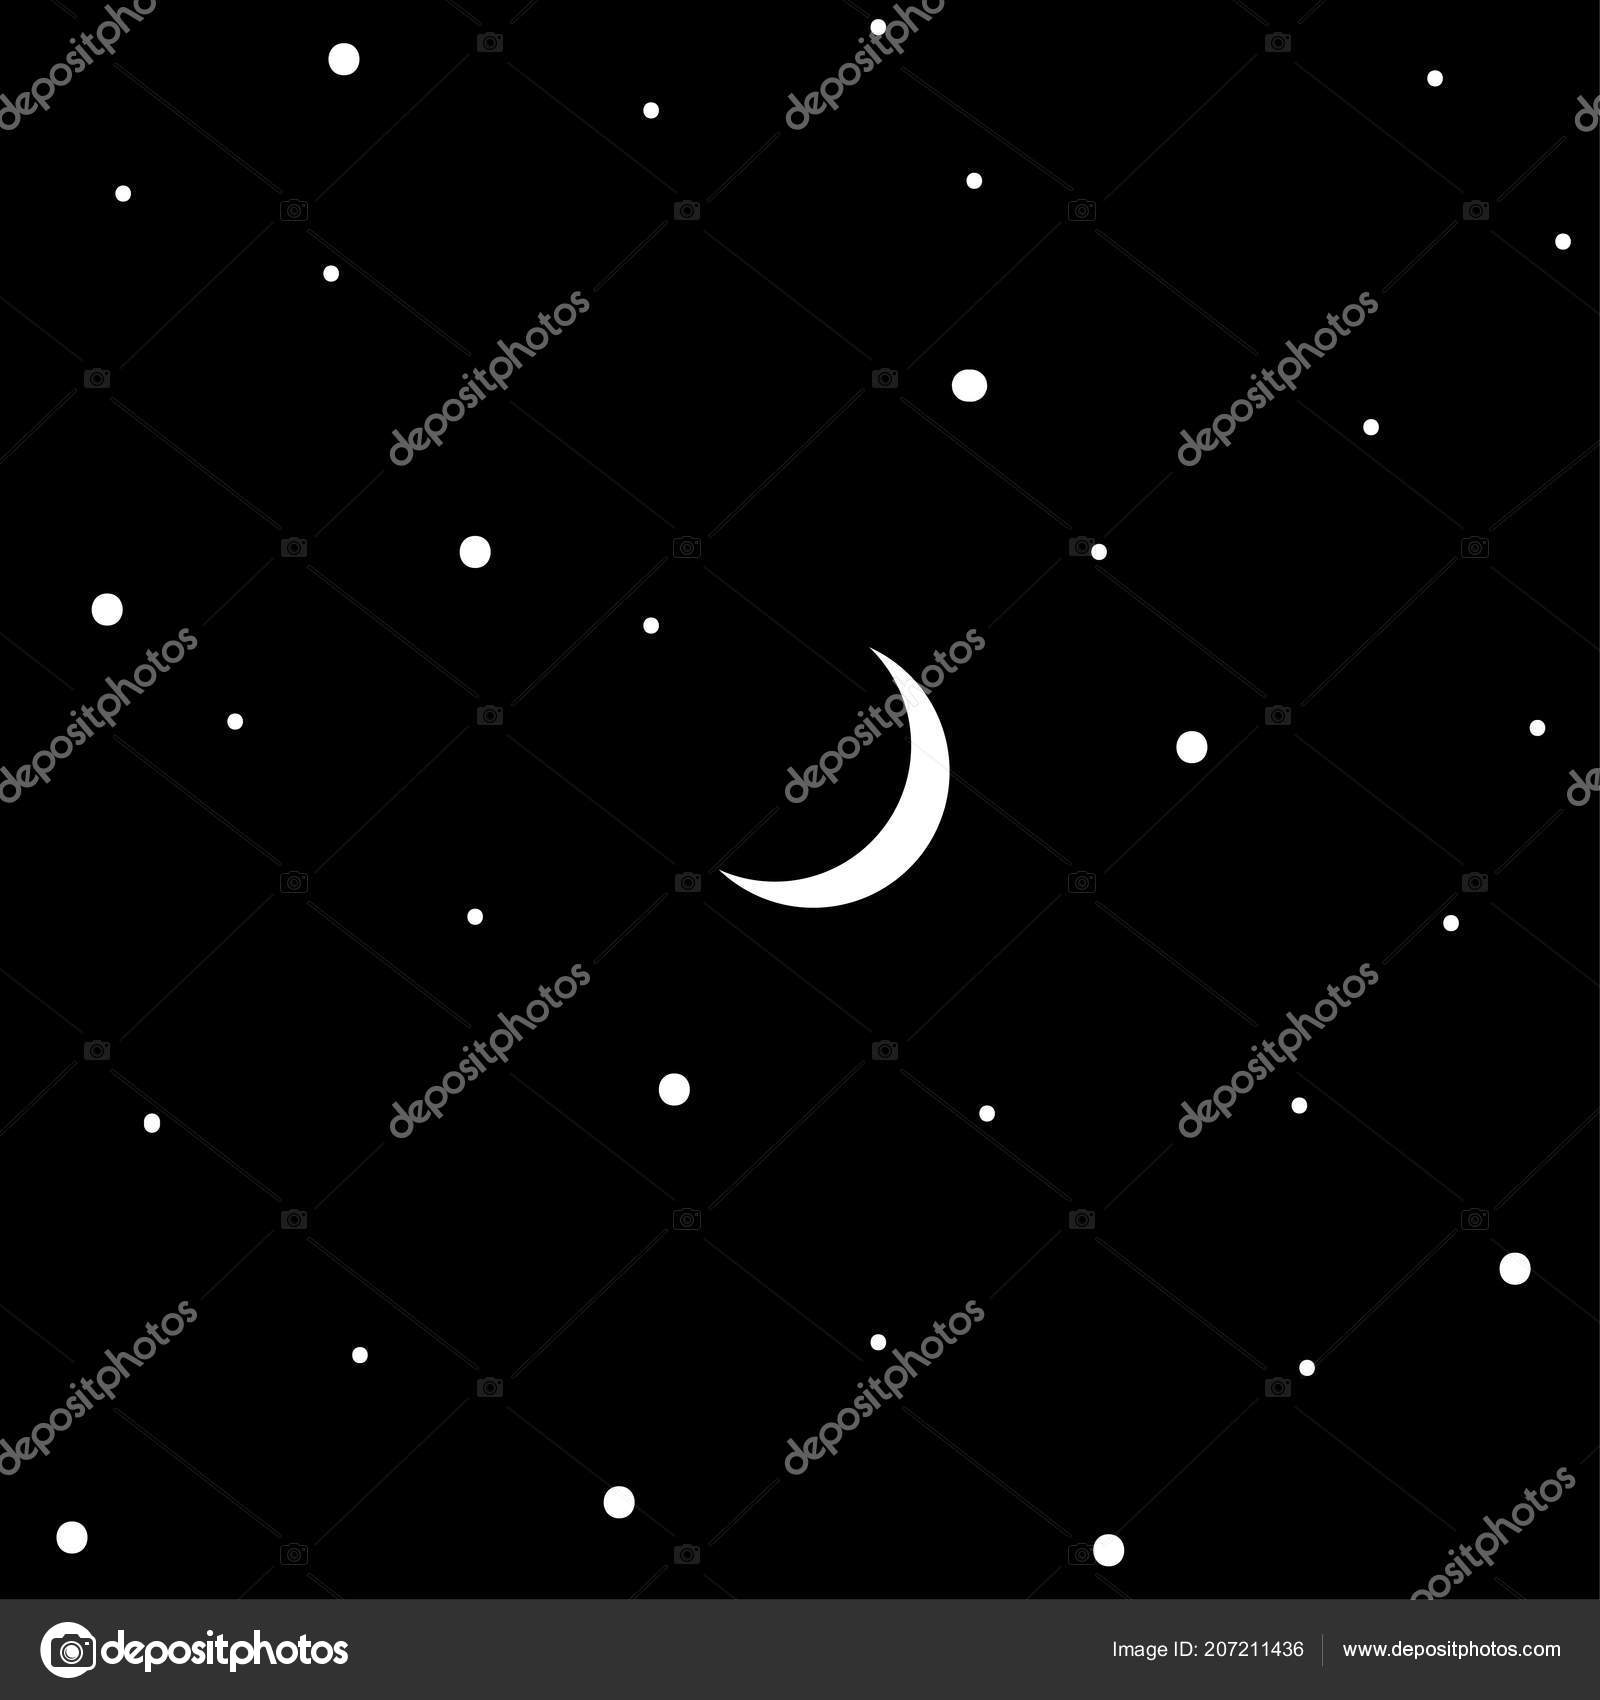 Wallpapers Starry Night Black White Texture Starry Sky